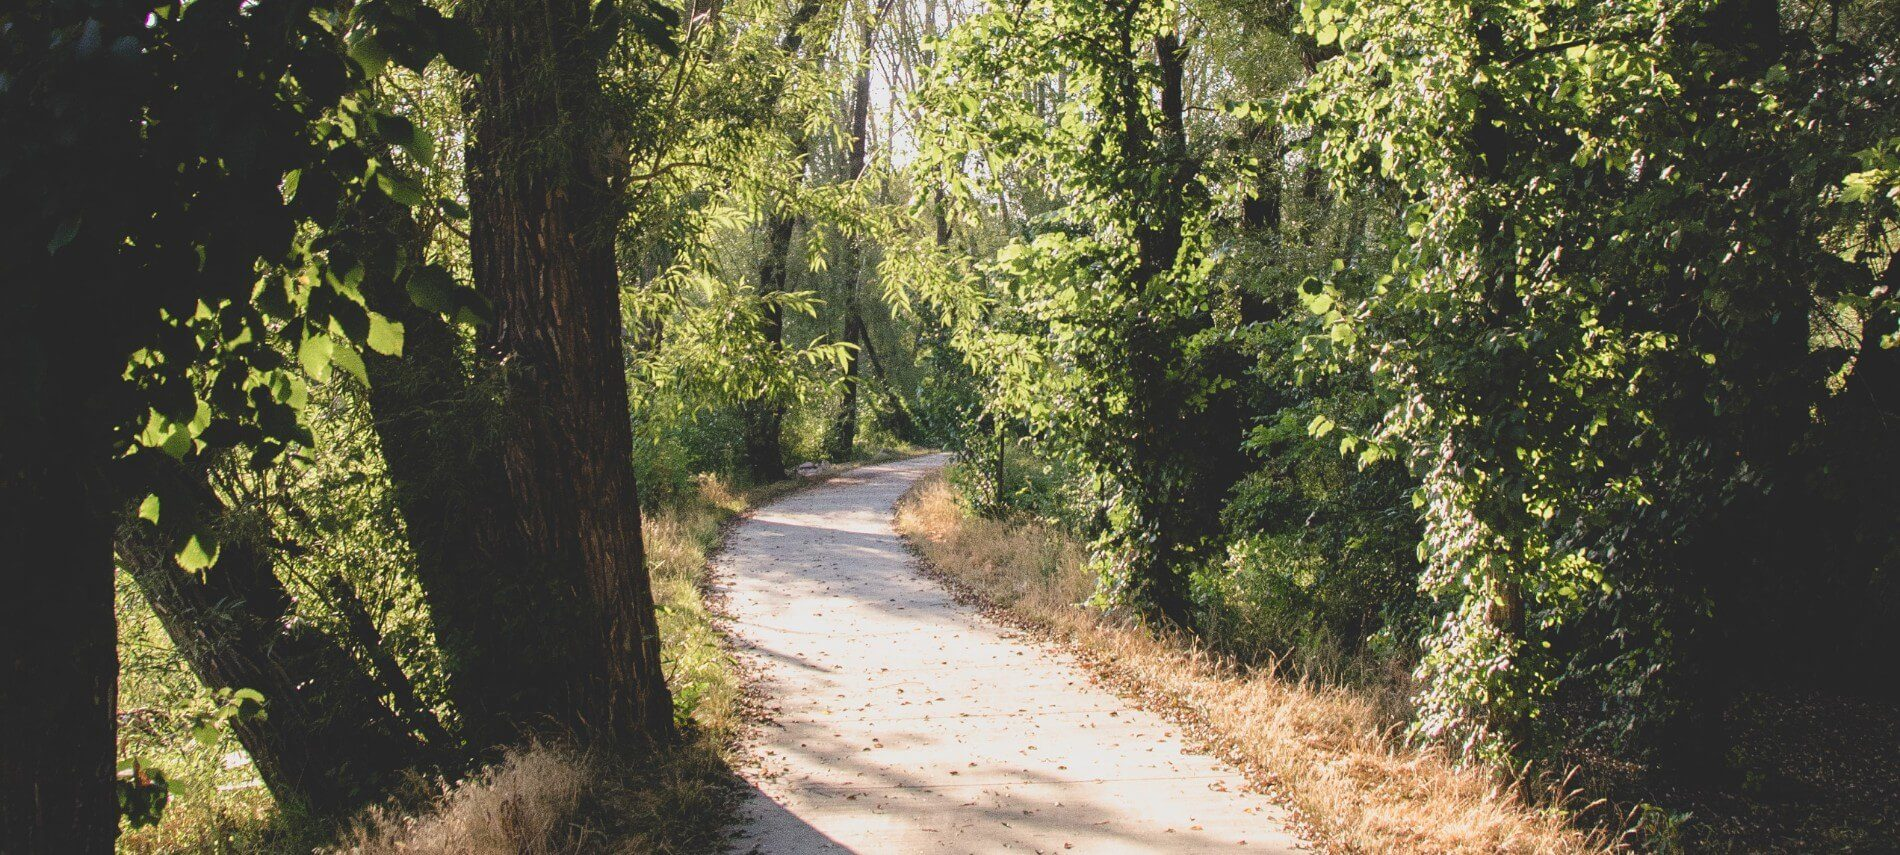 Paved path through a wooded area with tall trees and sunlight shining through